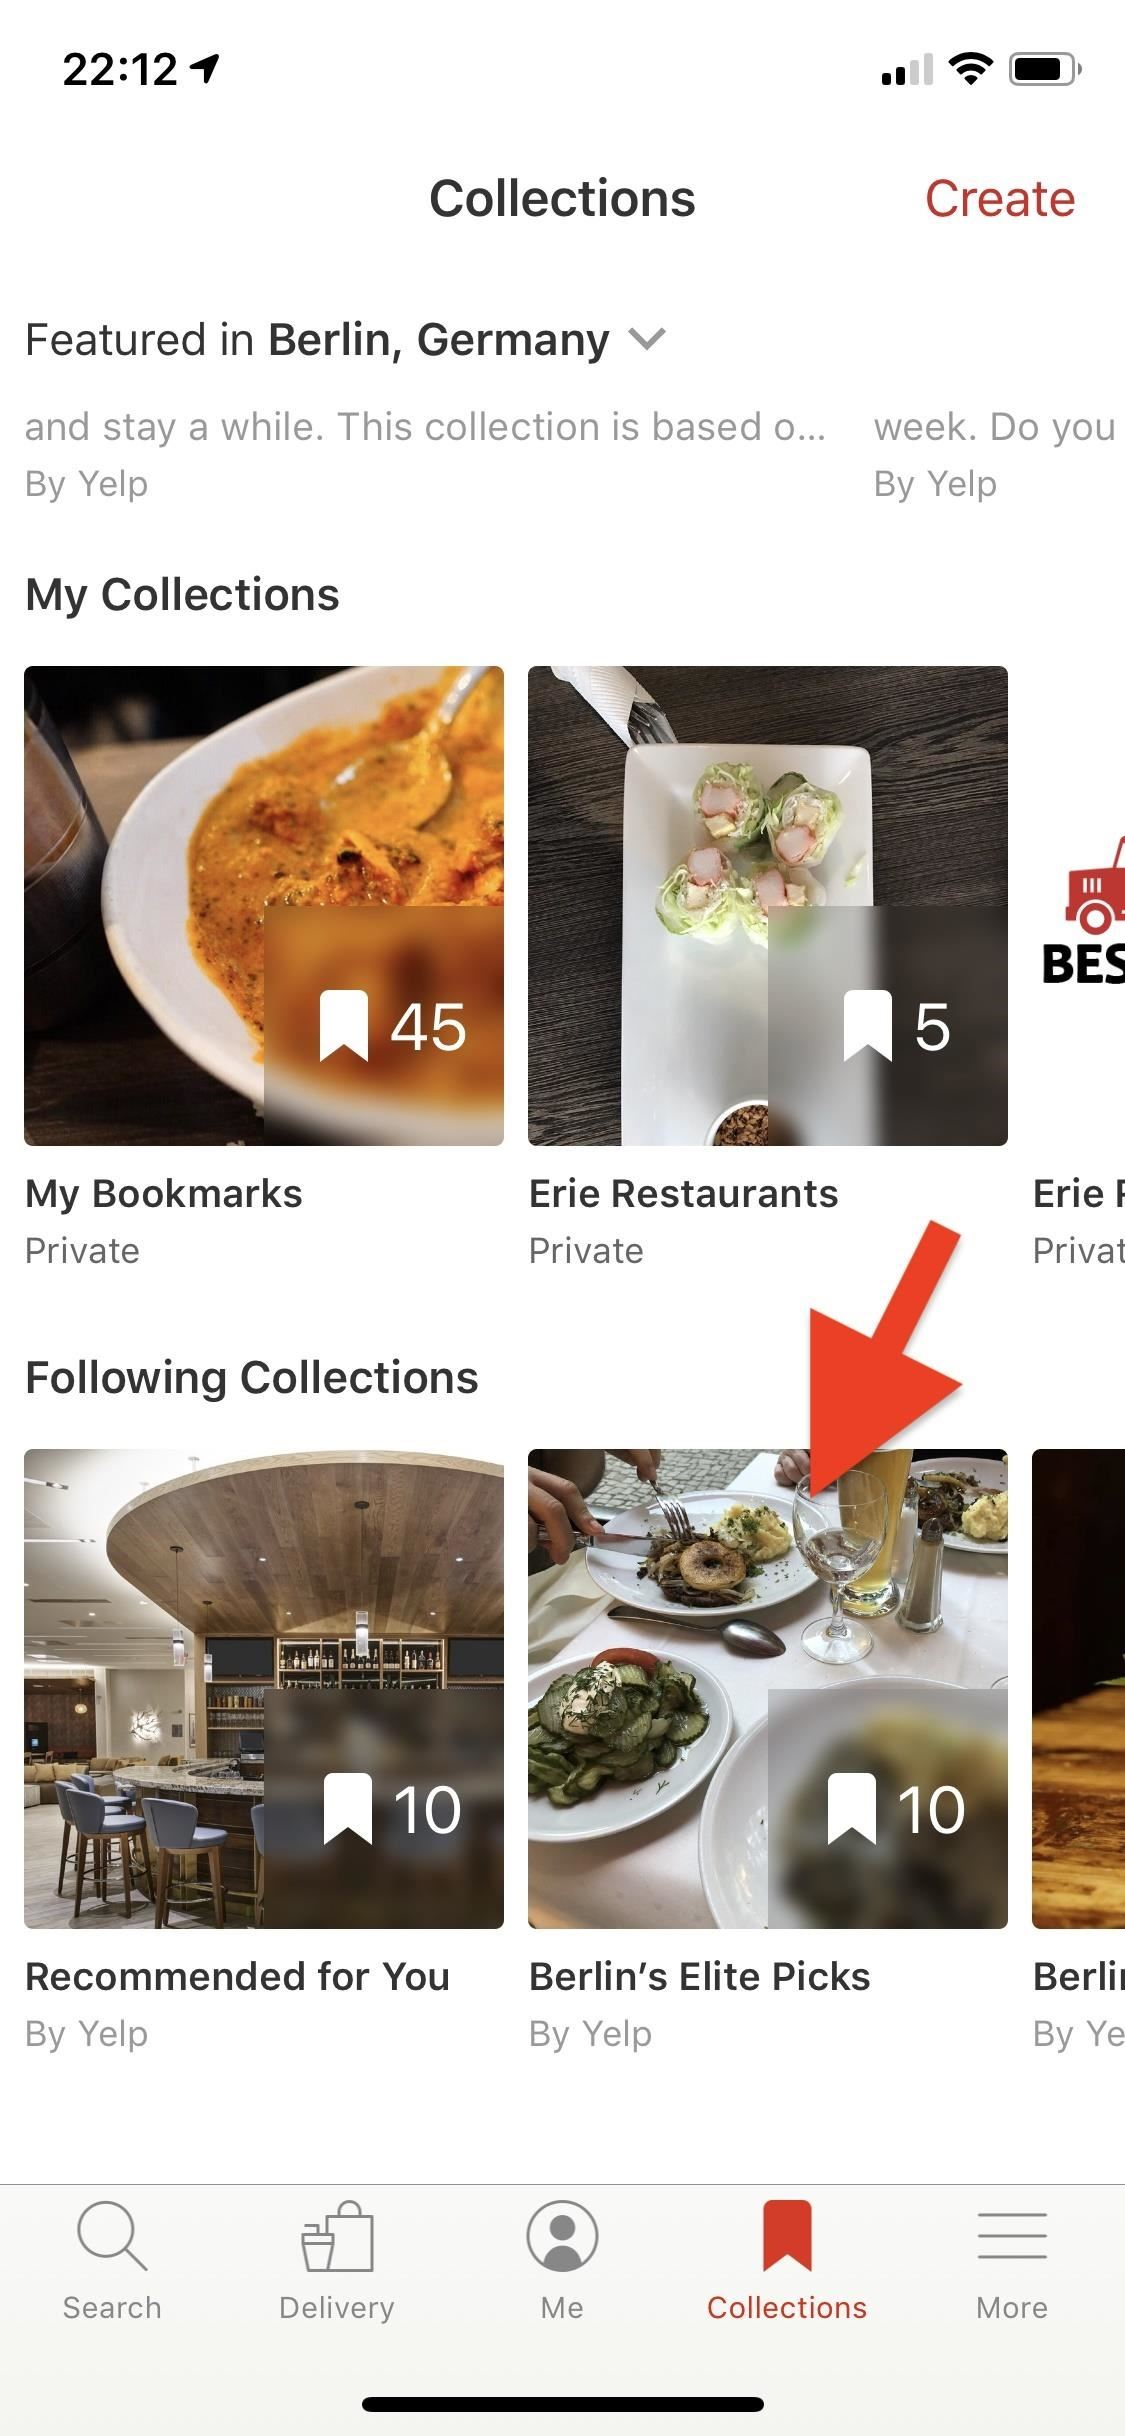 Use Yelp Collections to search for new locations and to preserve your marked locations More organized